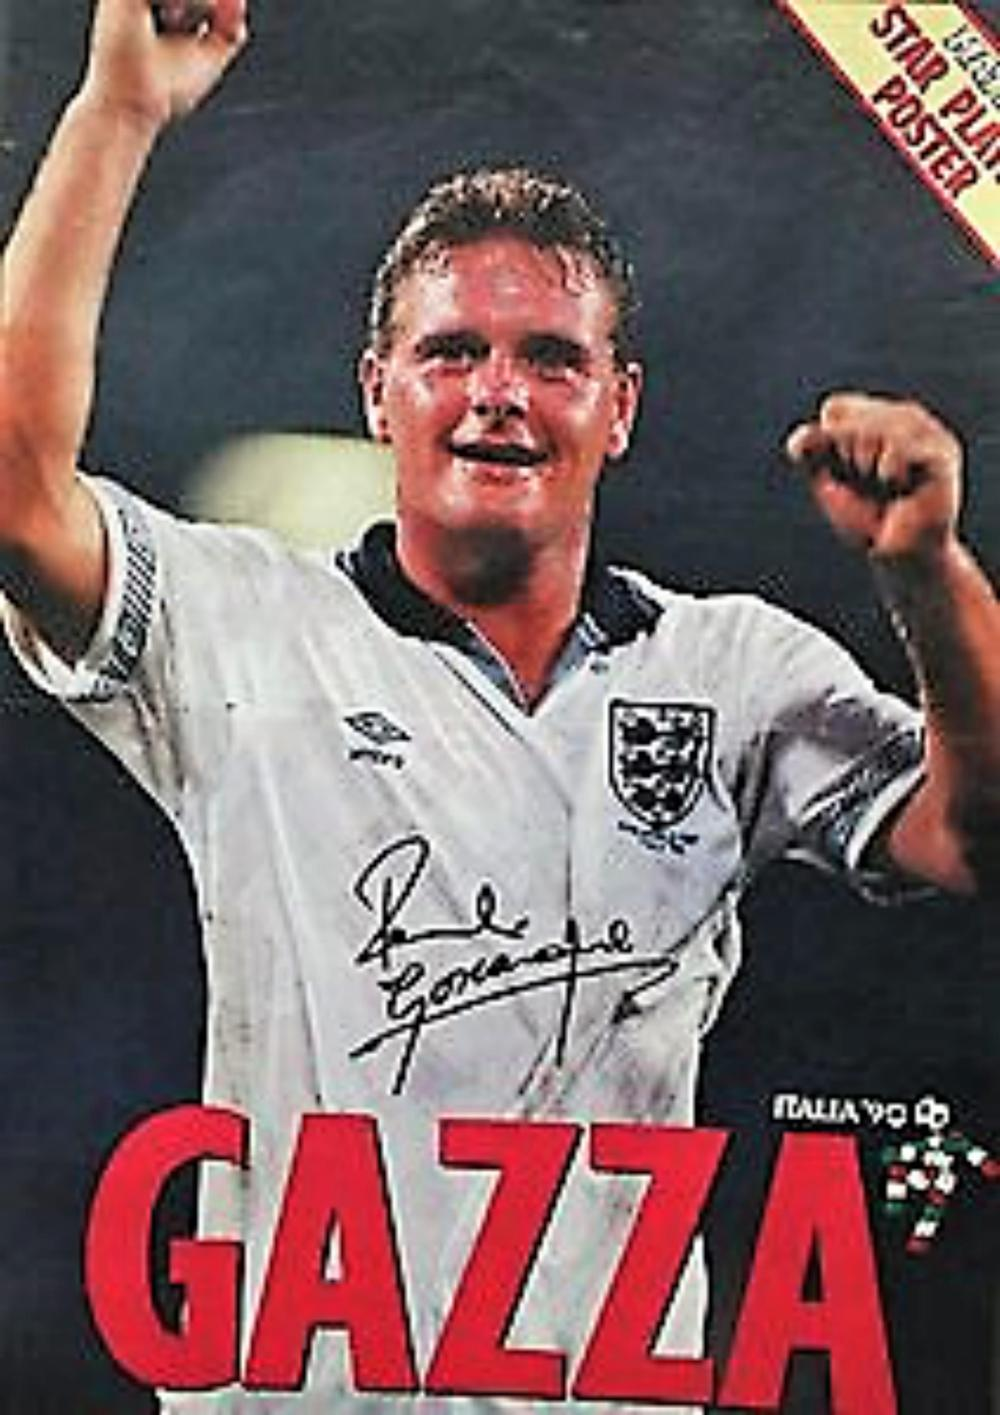 Lot 152: Paul Gascoigne Signed Poster (1990 Match Football Magazine) Paul John Gascoigne (born 27 May 1967) is a former England international footballer and football manager. He is also known by his nickname, Gazza. He earned 57 caps during his